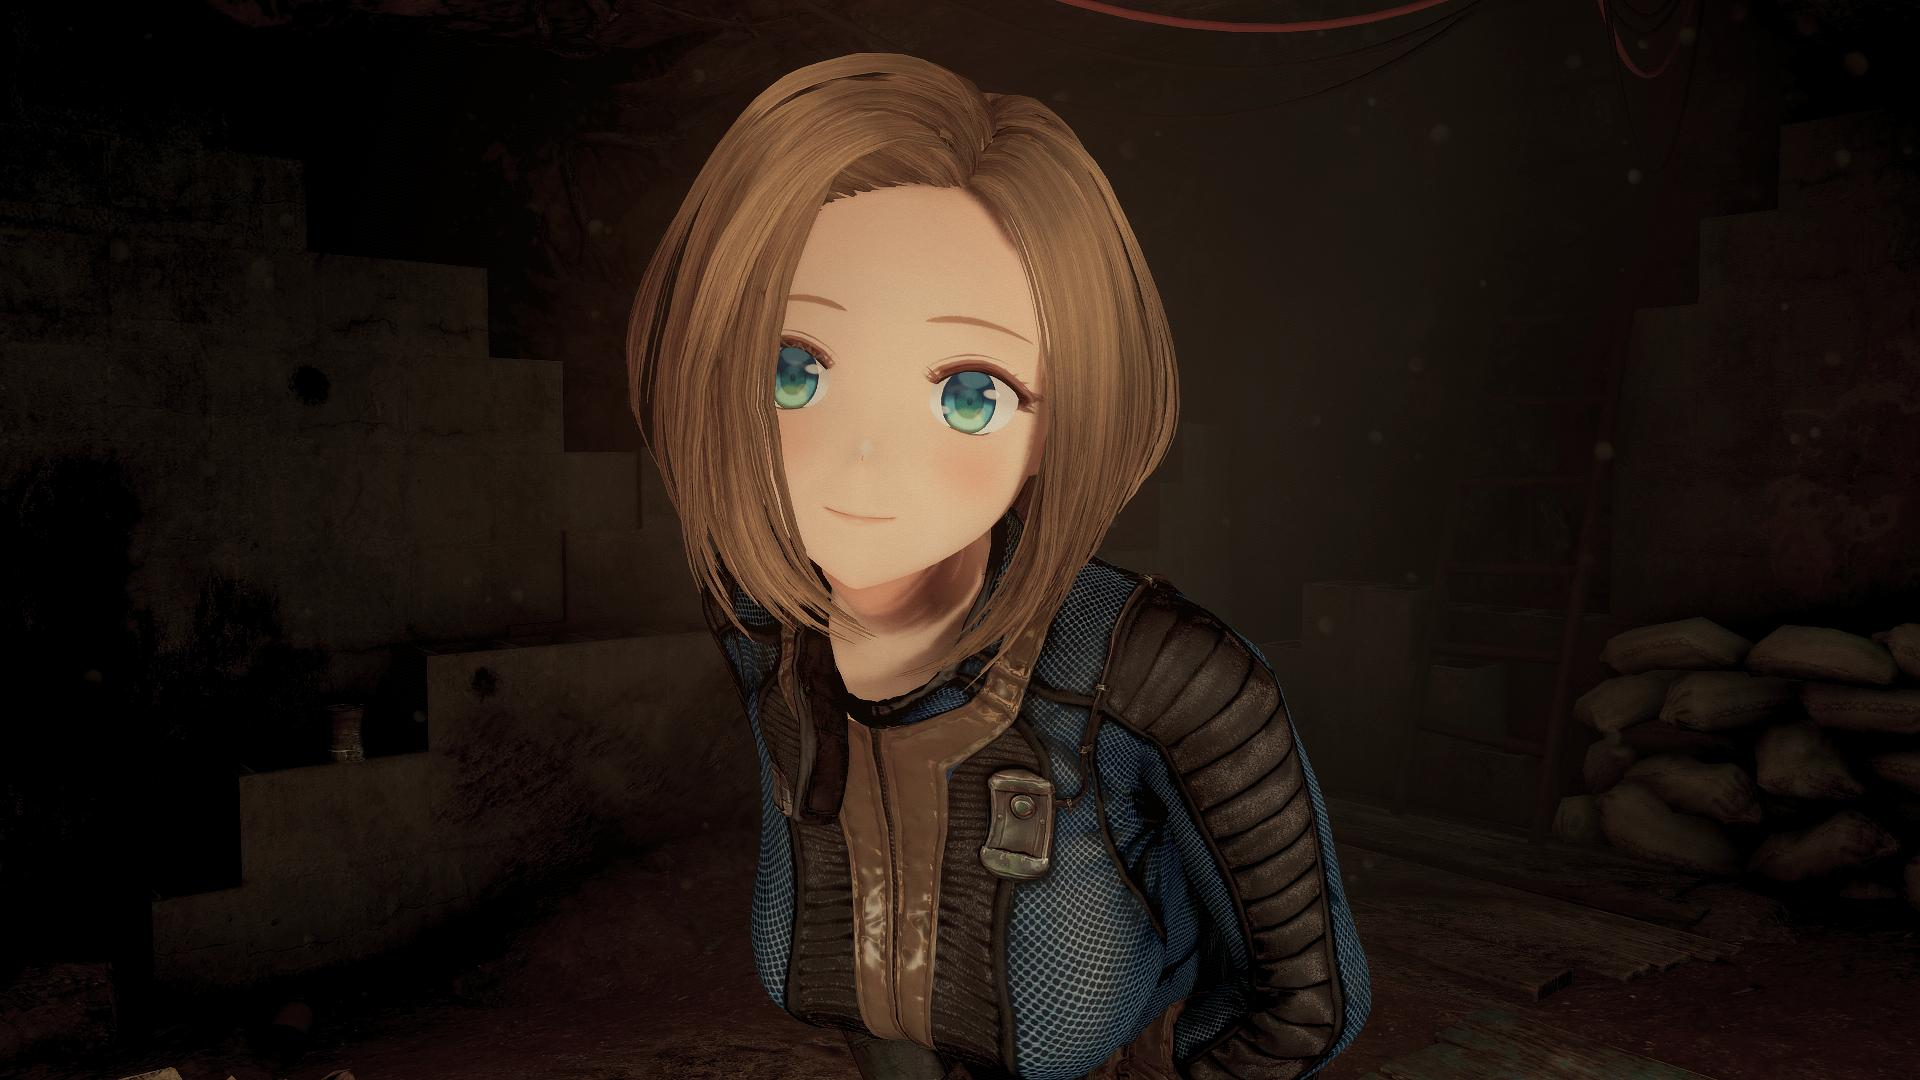 A Fallout 4 mod gives characters anime faces